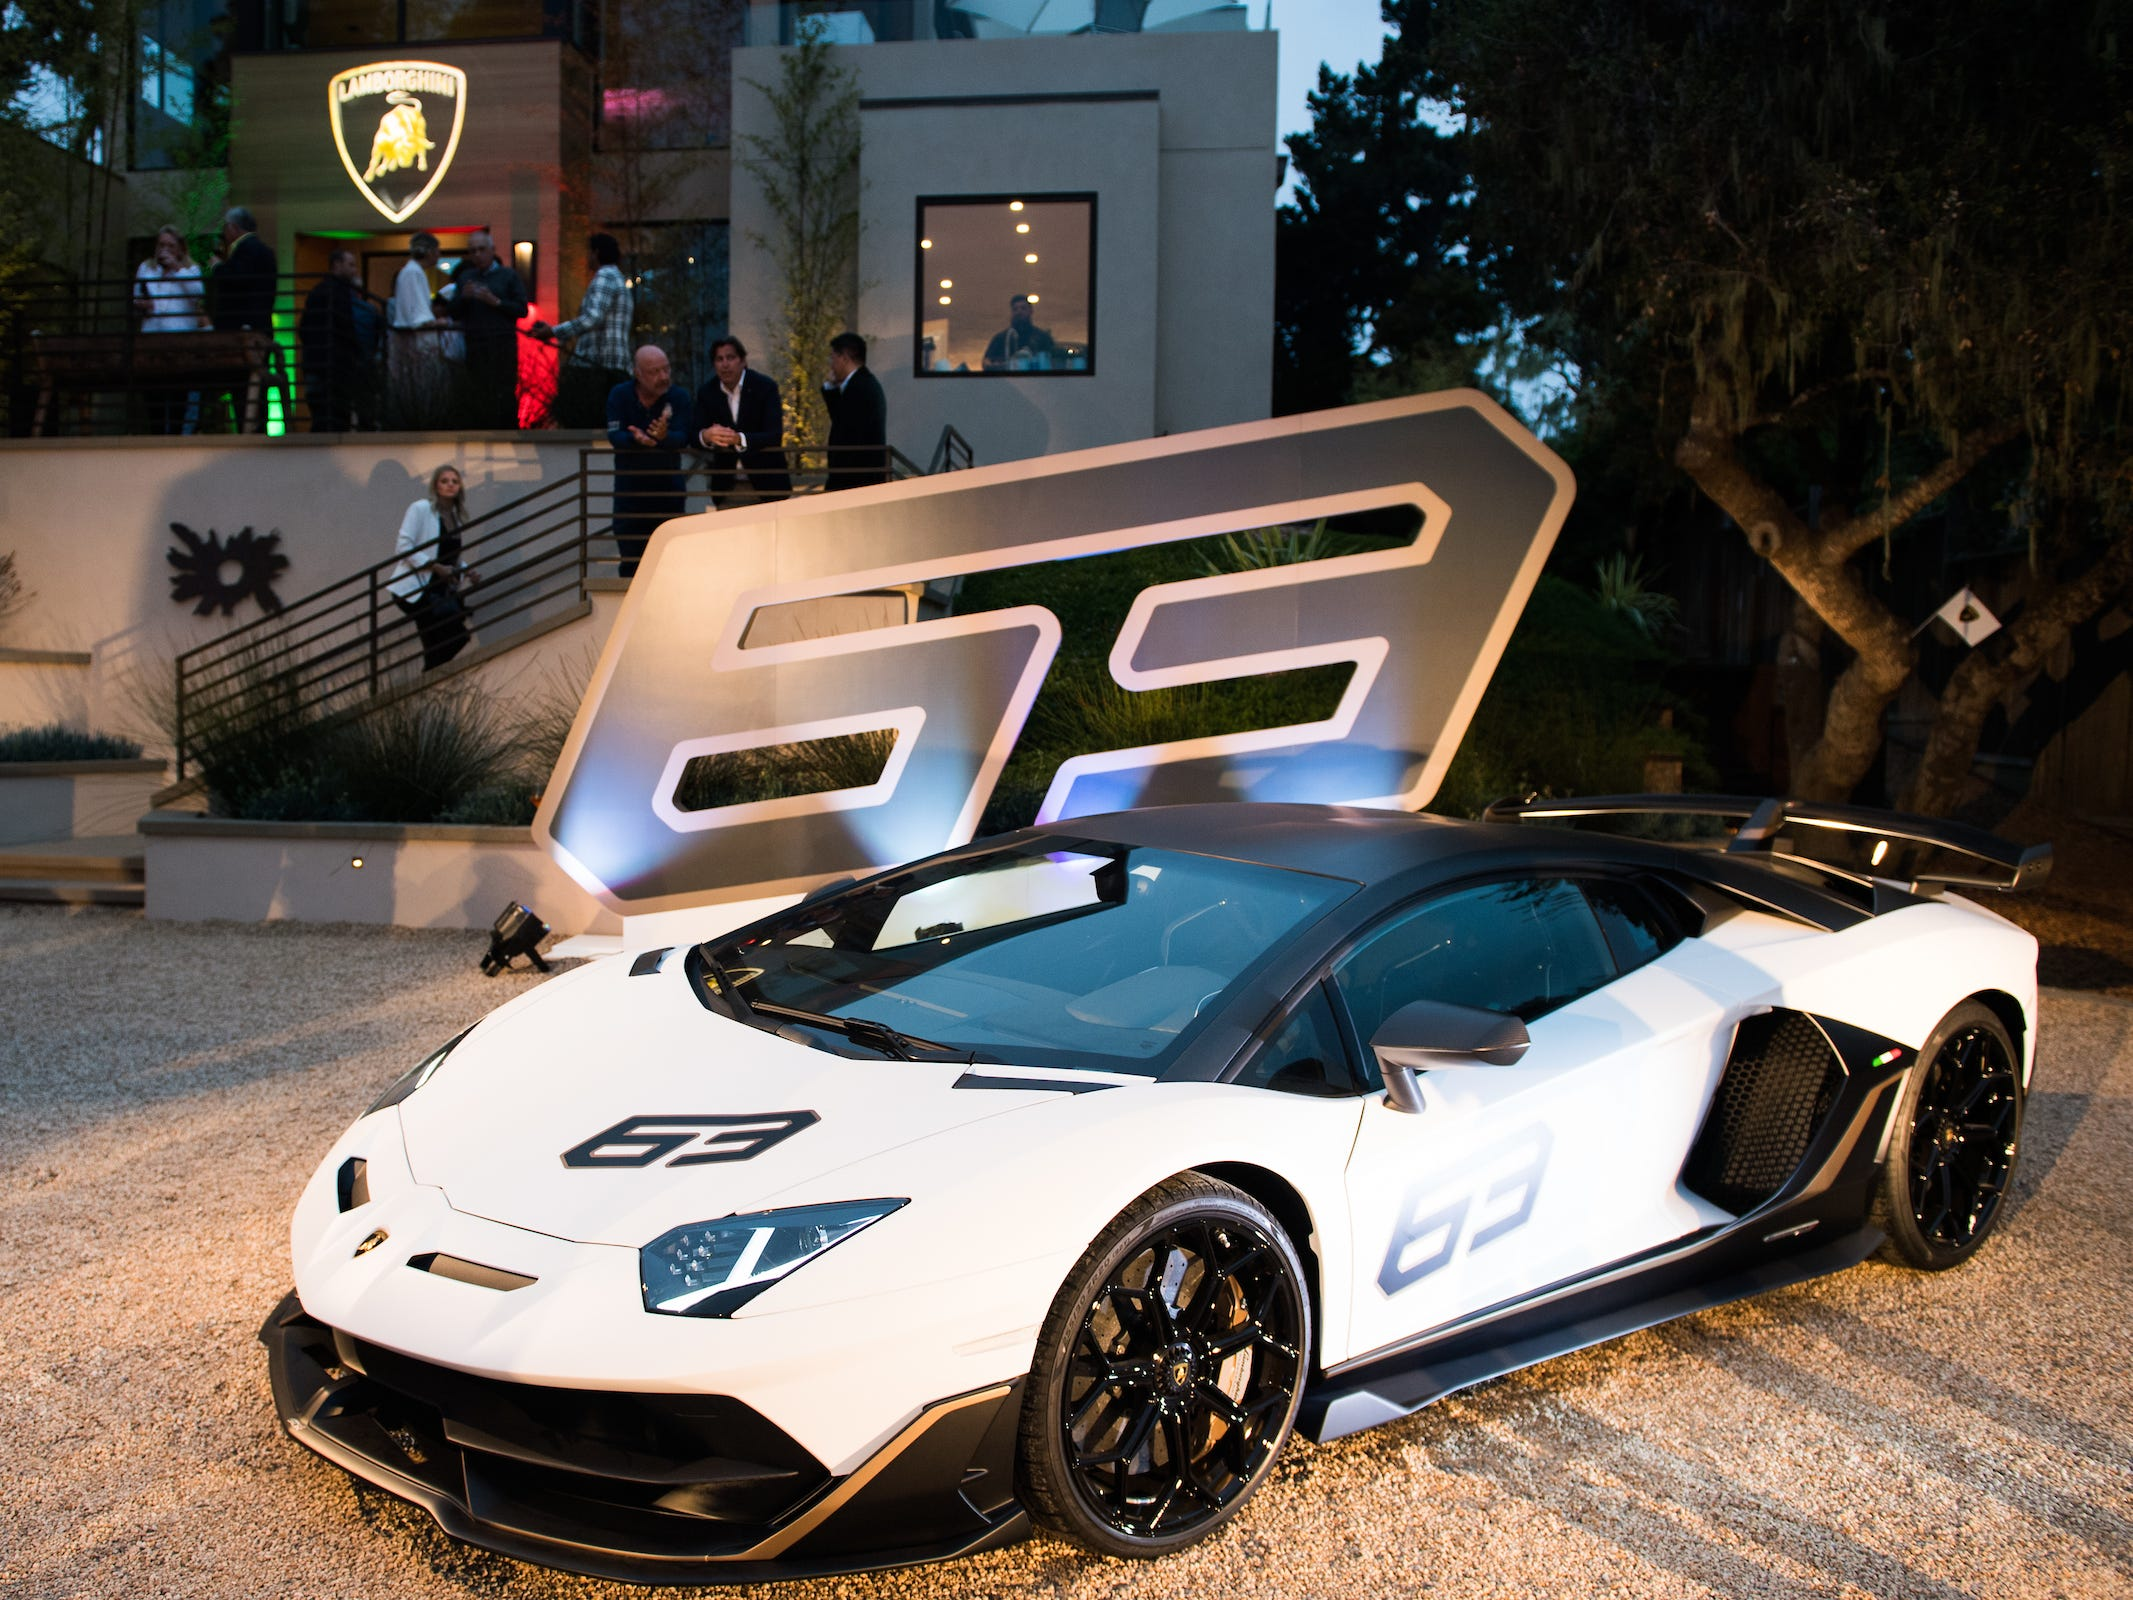 Aventador SVJ 63 on display at Lamborghini Lounge Monterey.